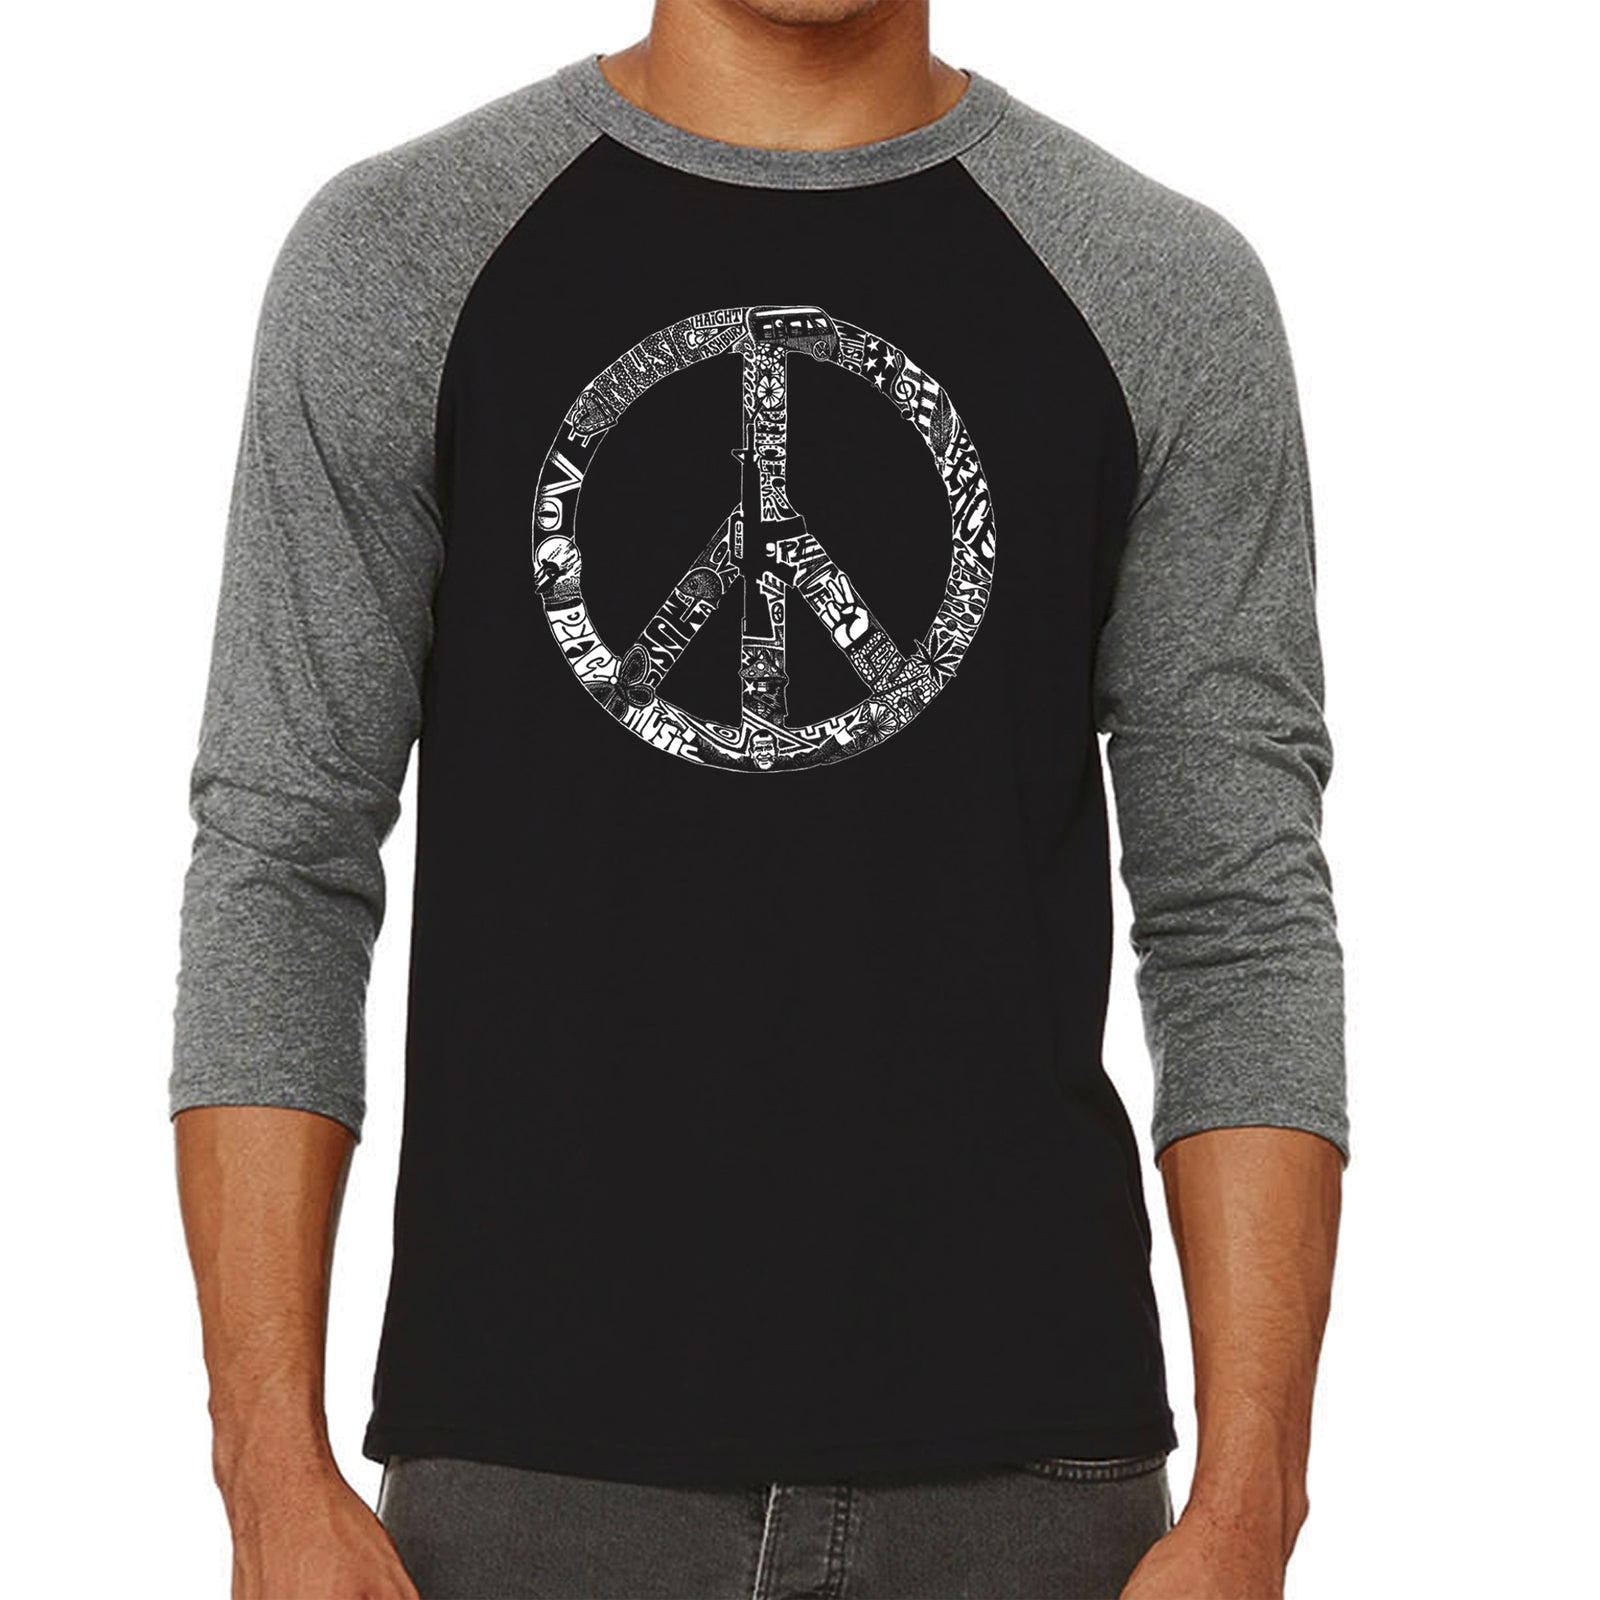 Men's Raglan Baseball Word Art T-shirt - PEACE, LOVE, & MUSIC